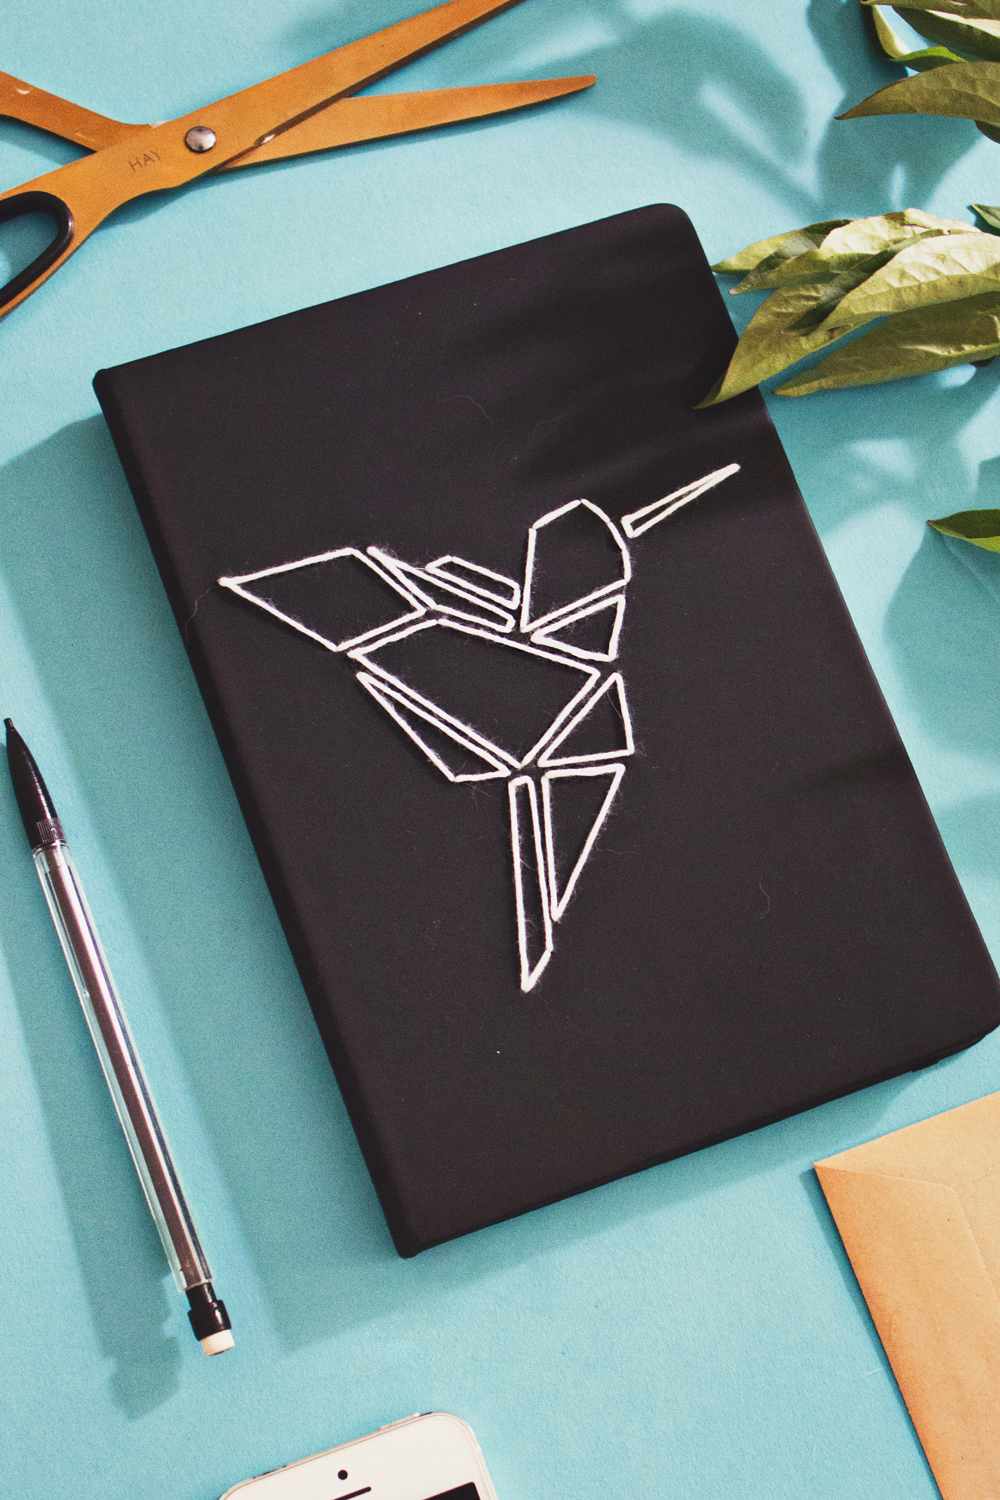 Diy Paper Book Cover : Diy origami embroidered book cover